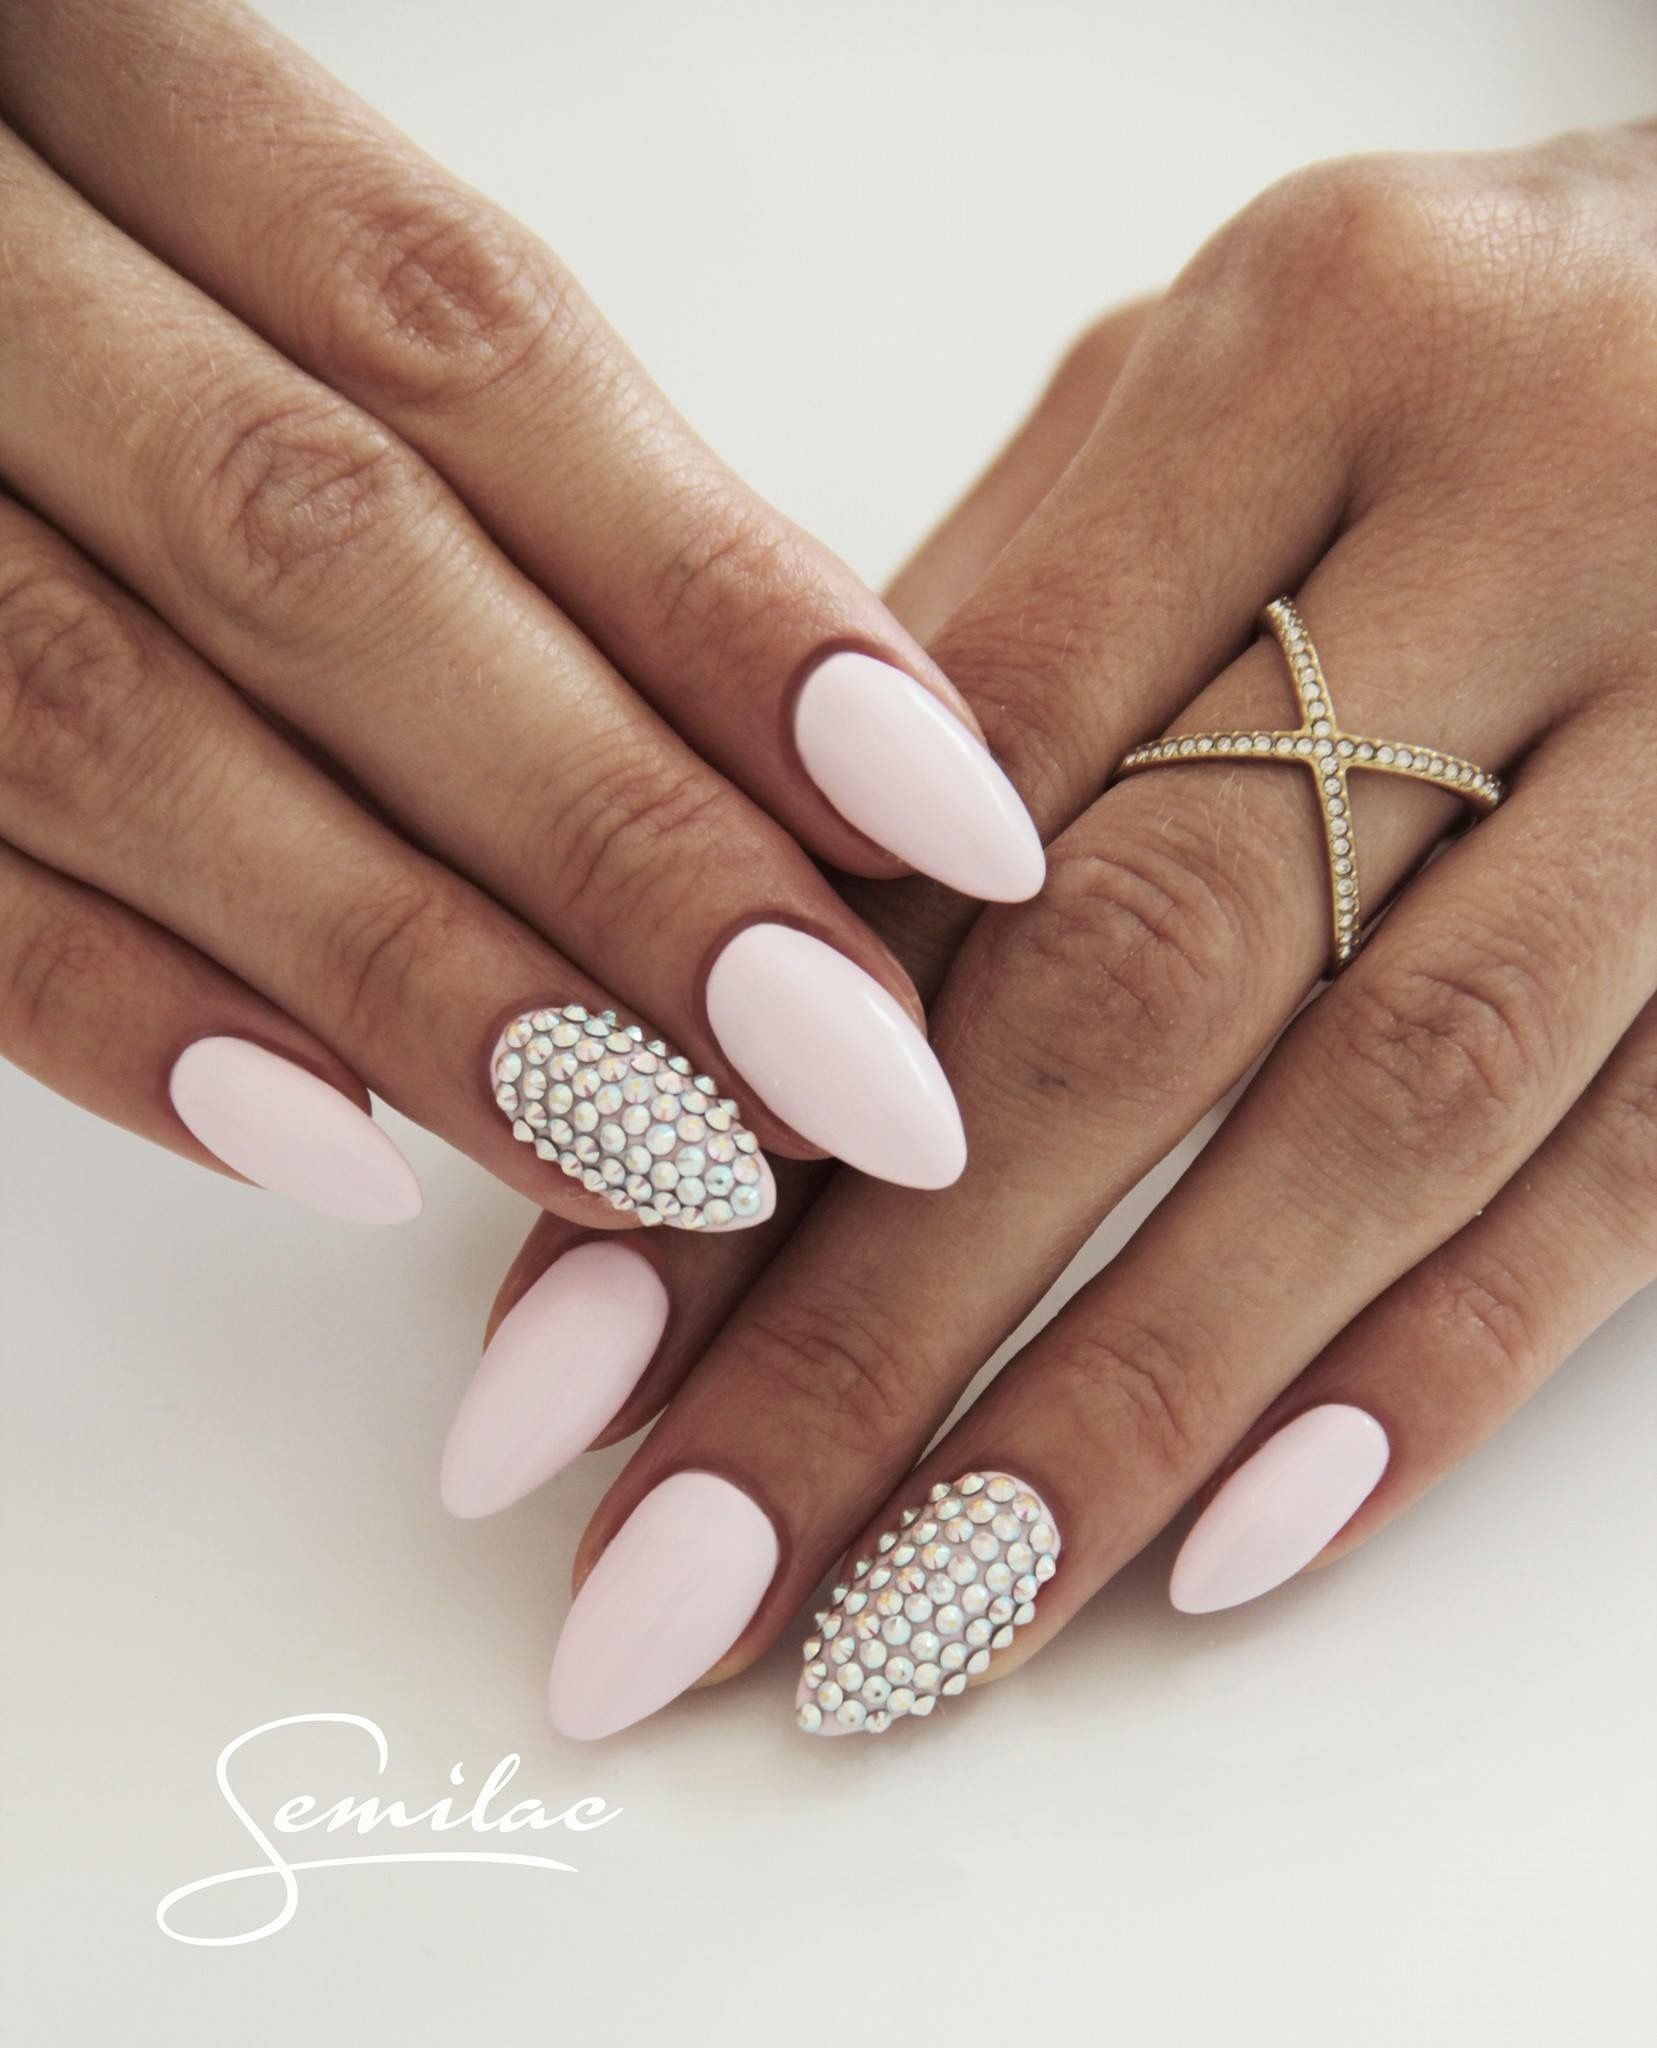 Pin by Scully on Paznokcie | Pinterest | Manicure, Nail nail and ...